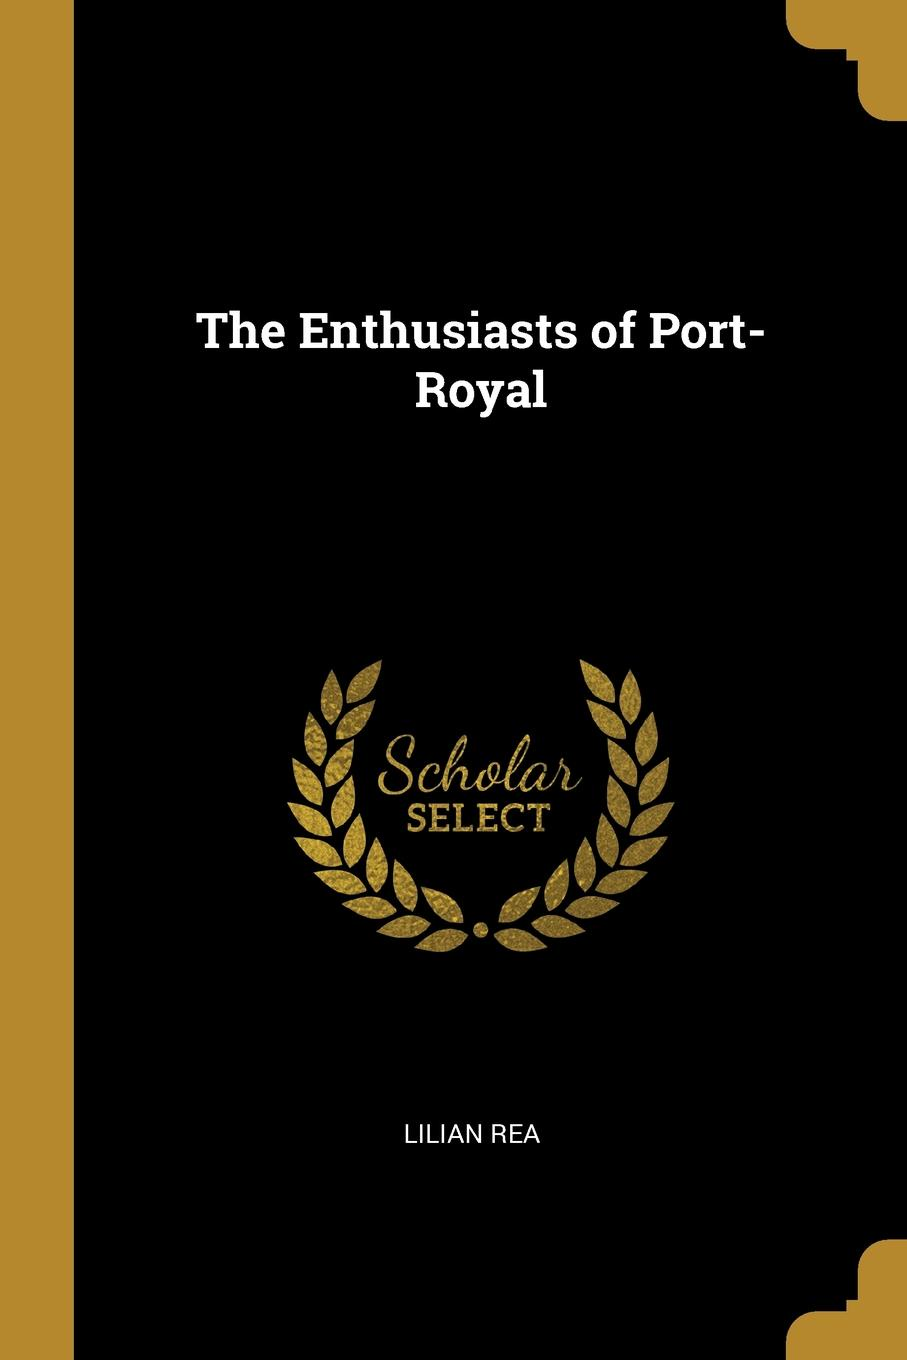 Lilian Rea. The Enthusiasts of Port-Royal